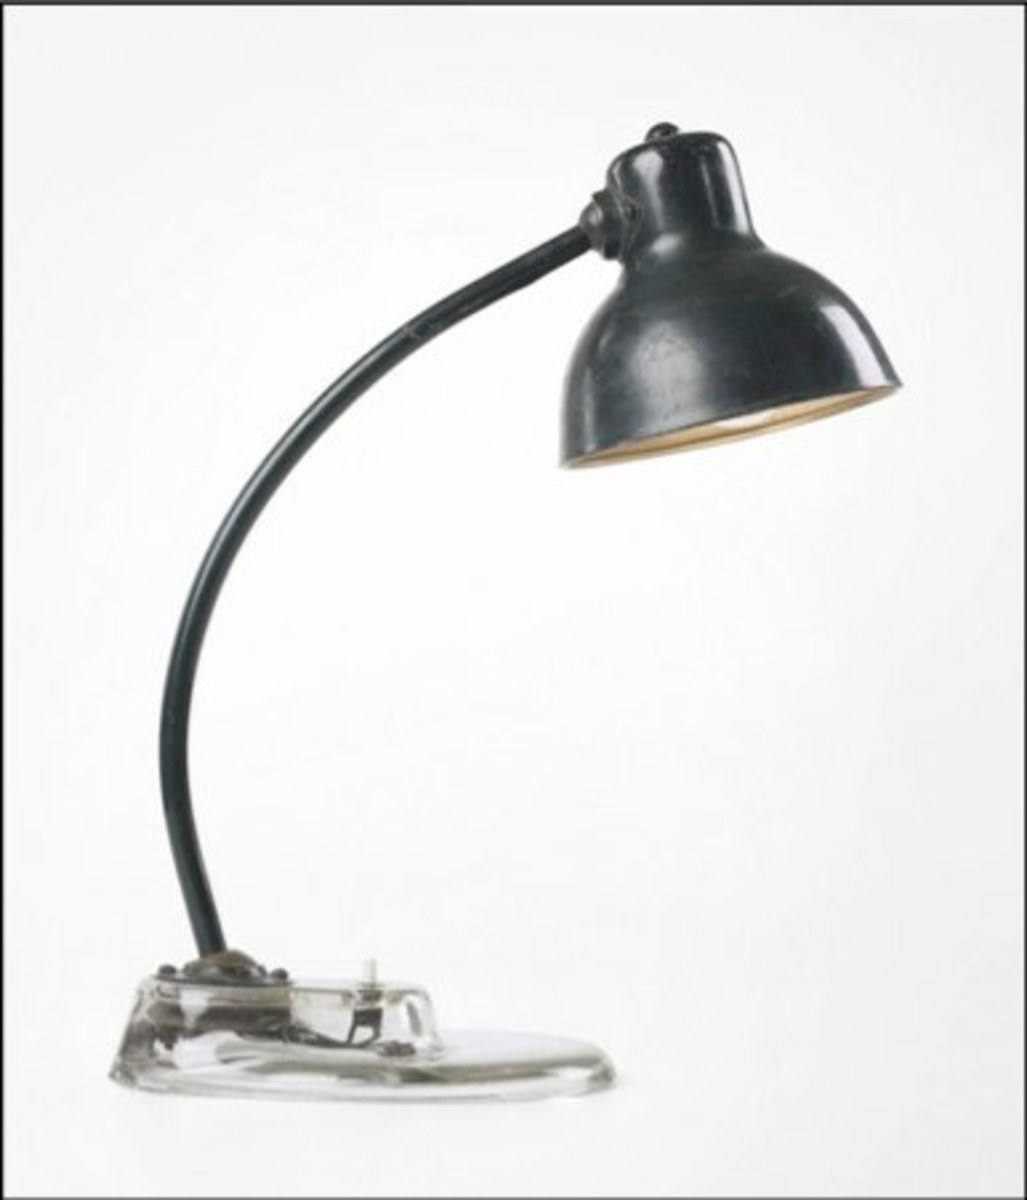 Many of her collaborations with companies such as Körting & Mathiesen birthed numerous lamps that were mass produced even during the depressed interwar era and still stand today as examples desirable design (albeit, mostly as reproductions).